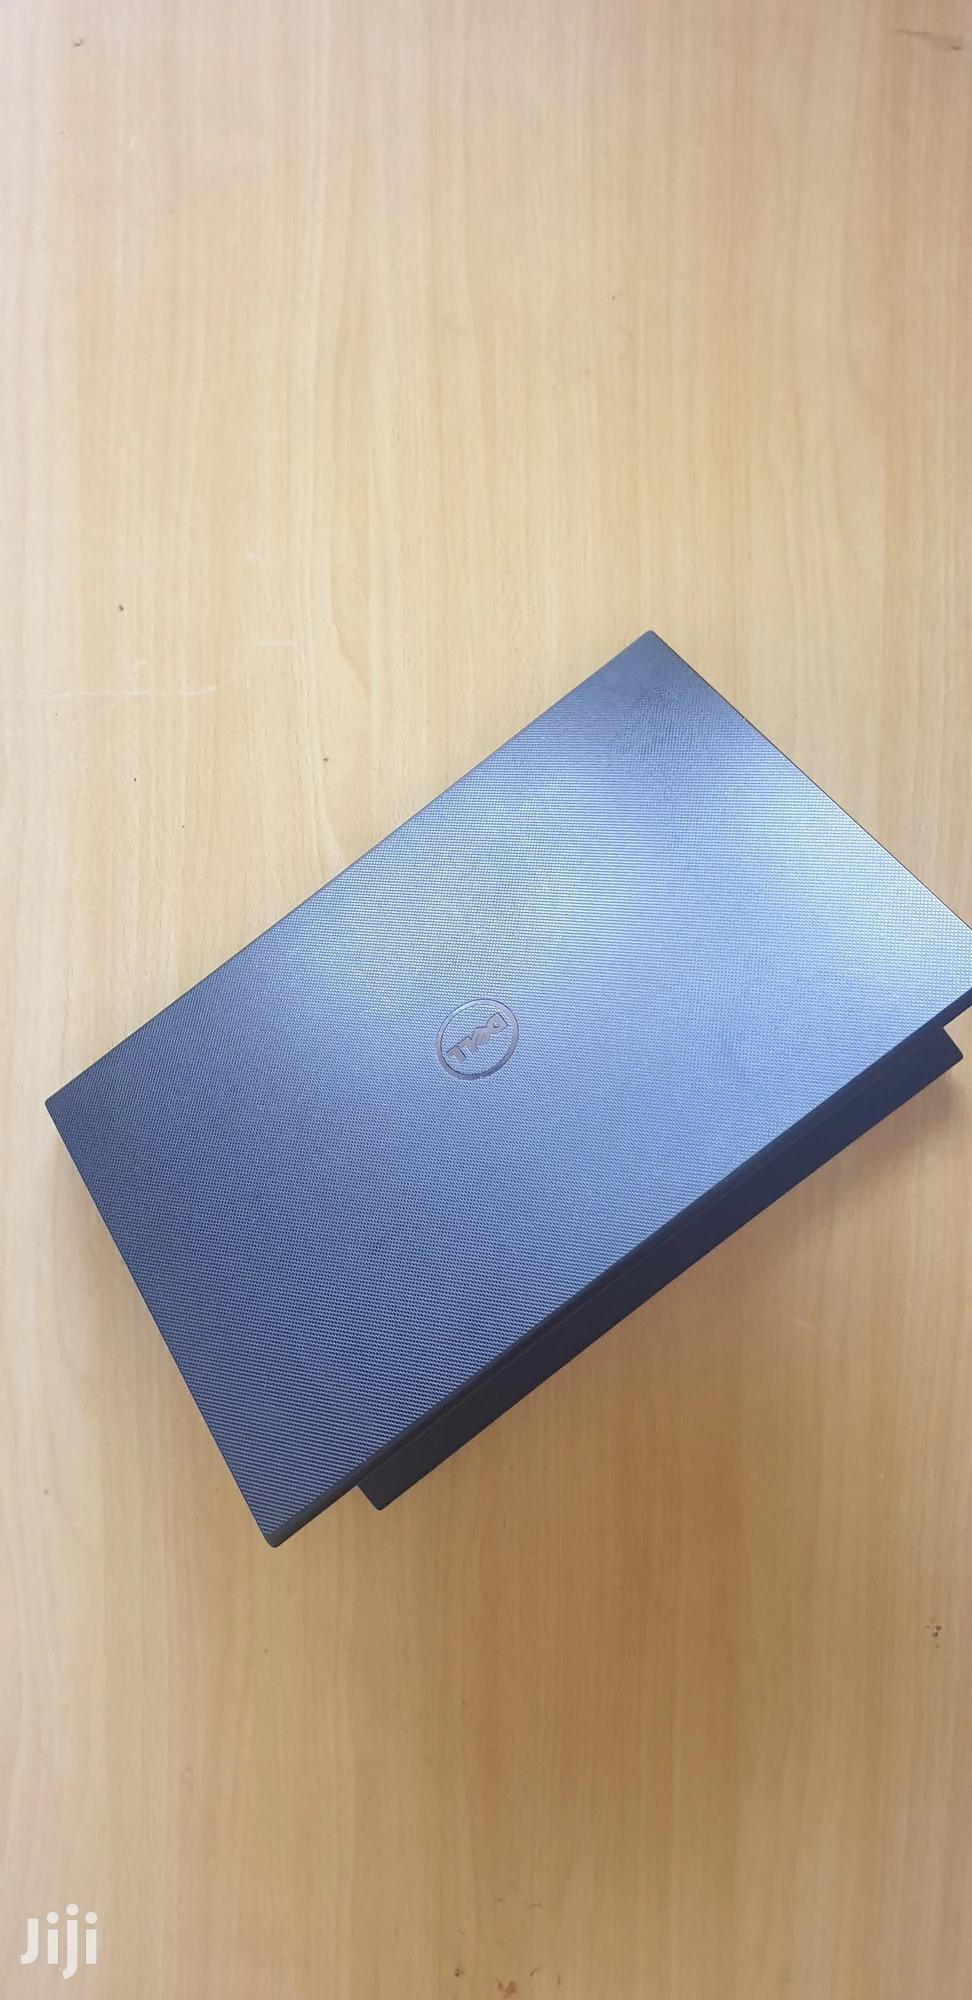 Laptop Dell Inspiron 15 3542 4GB Intel Core I3 HDD 750GB | Laptops & Computers for sale in Dansoman, Greater Accra, Ghana